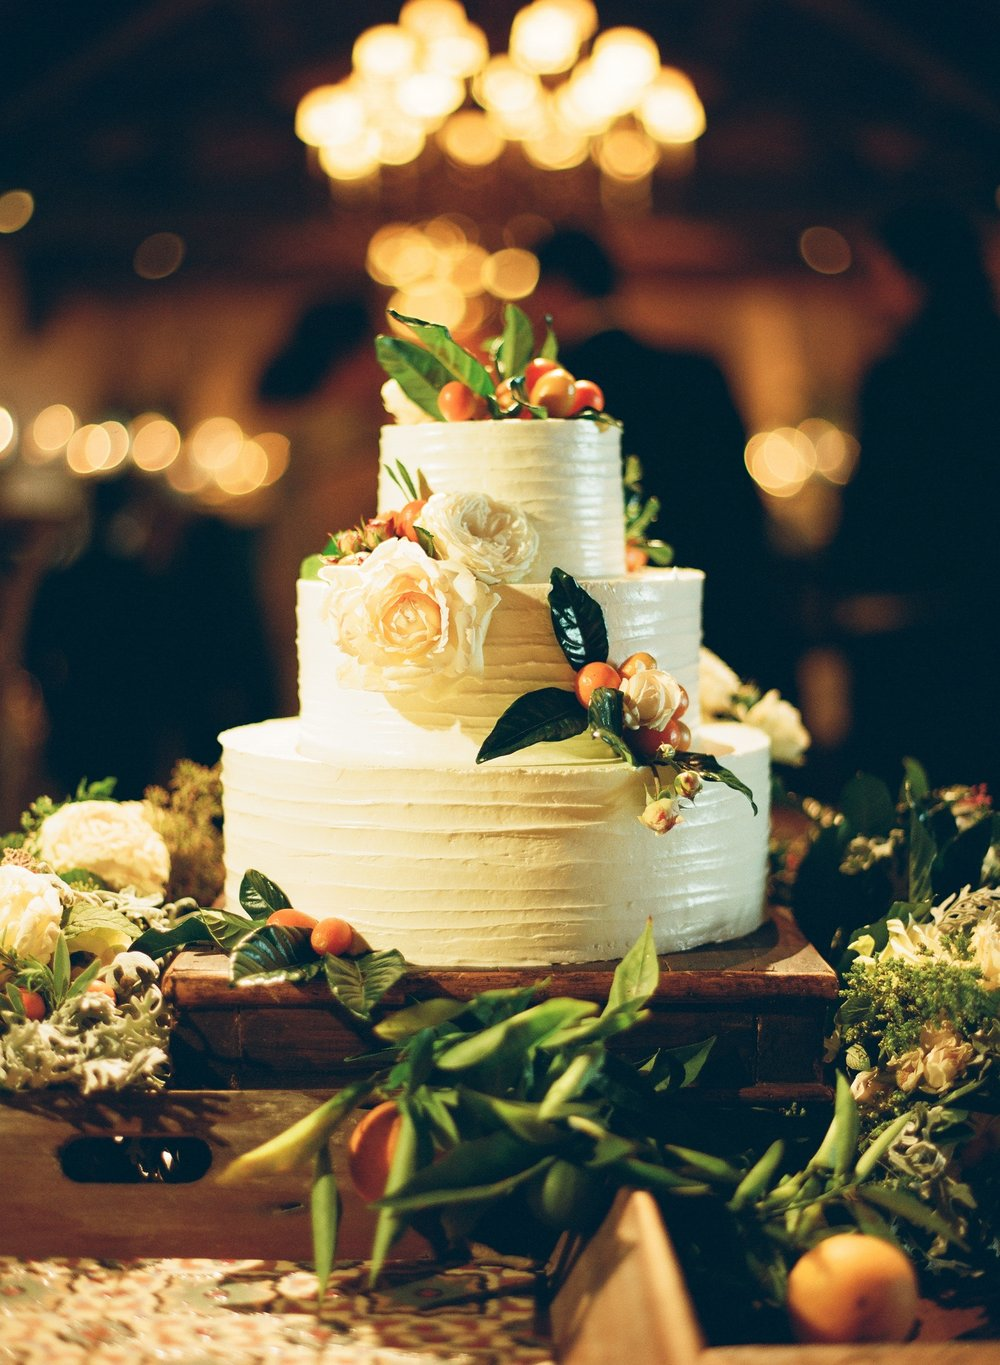 www.santabarbarawedding.com | Santa Barbara Wedding Style |  Buttercream frosting Three tier wedding cake | Megan Sorel Photography | Alexandra Kolendrianos | Four Seasons Biltmore